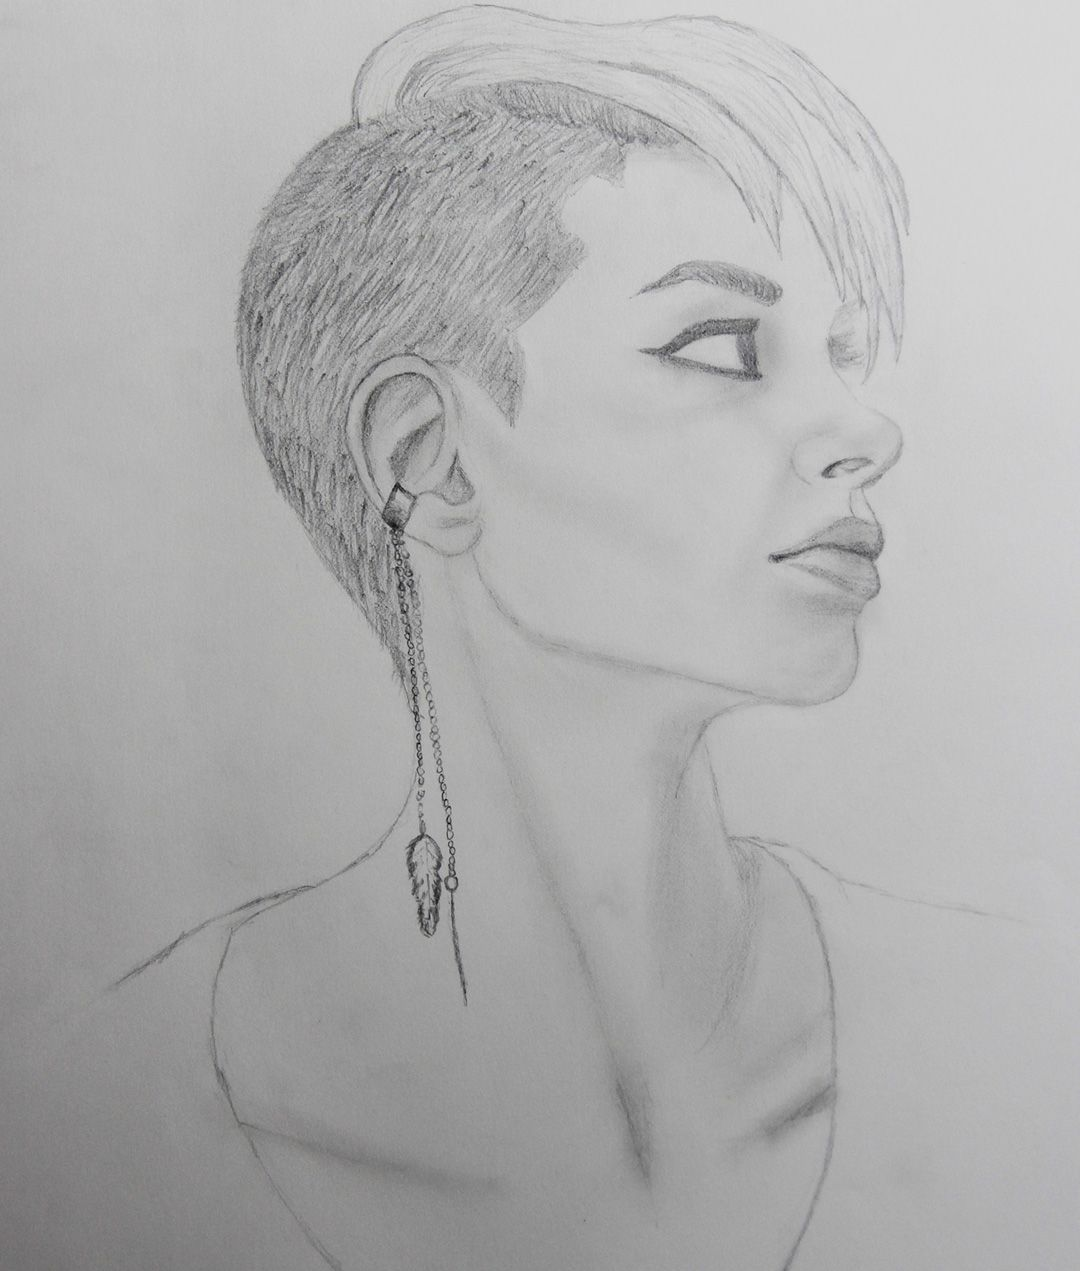 ETTA: Pictures Of Shaved Hair